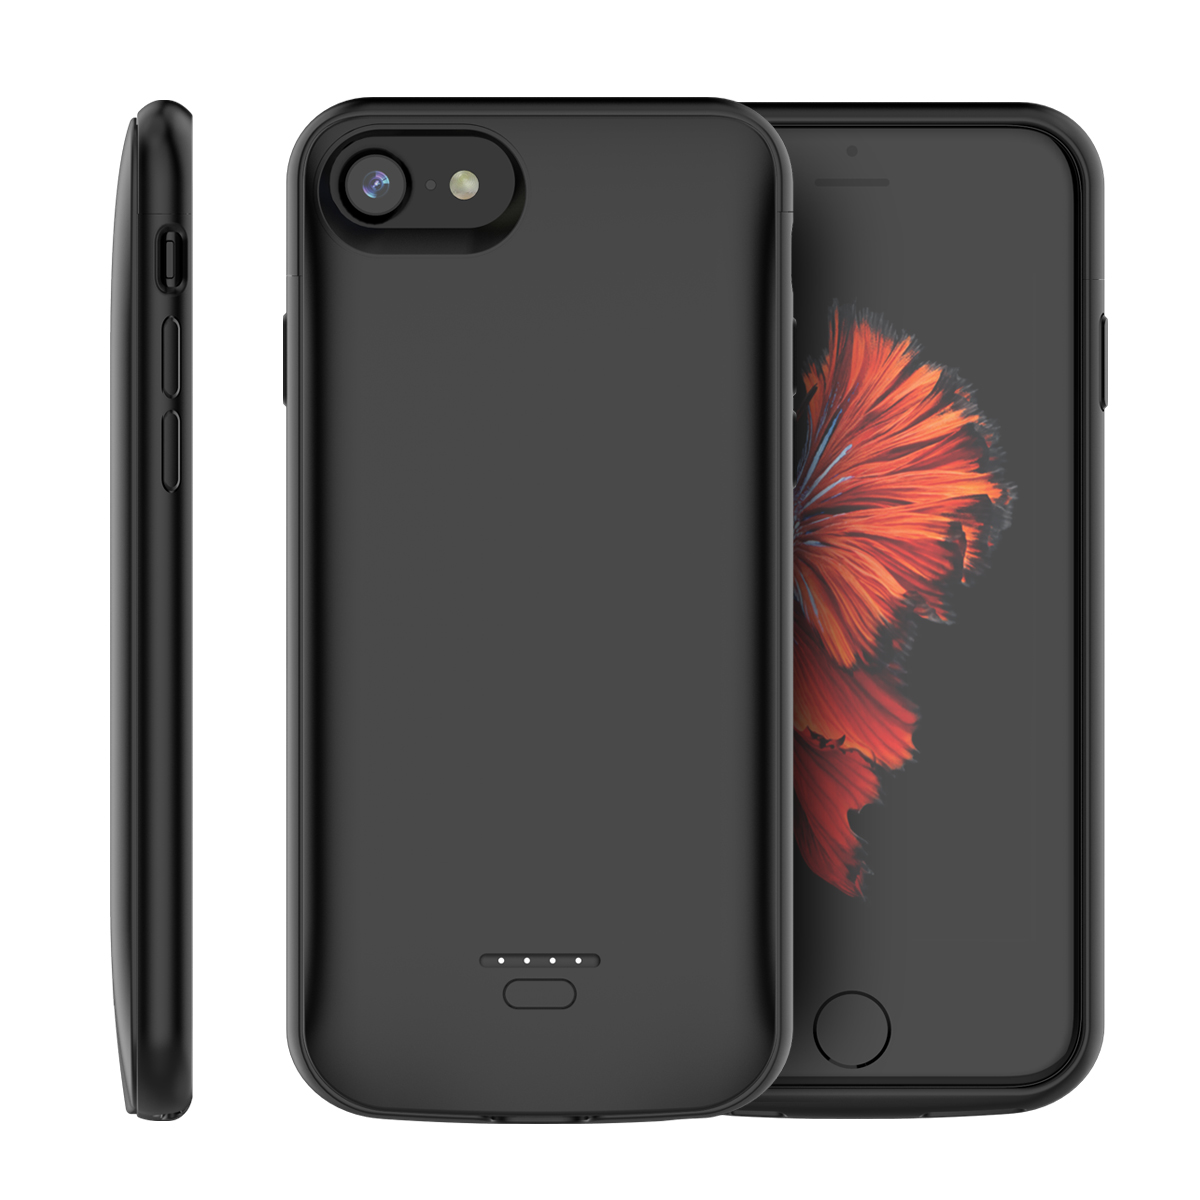 For <font><b>iPhone</b></font> 7 8 5 SE 5S <font><b>Battery</b></font> Charger <font><b>Case</b></font> 4000mAh Backup Power Bank Charging Cover For <font><b>iPhone</b></font> X <font><b>6</b></font> 6s 11 Pro Max <font><b>Battery</b></font> <font><b>Case</b></font> image